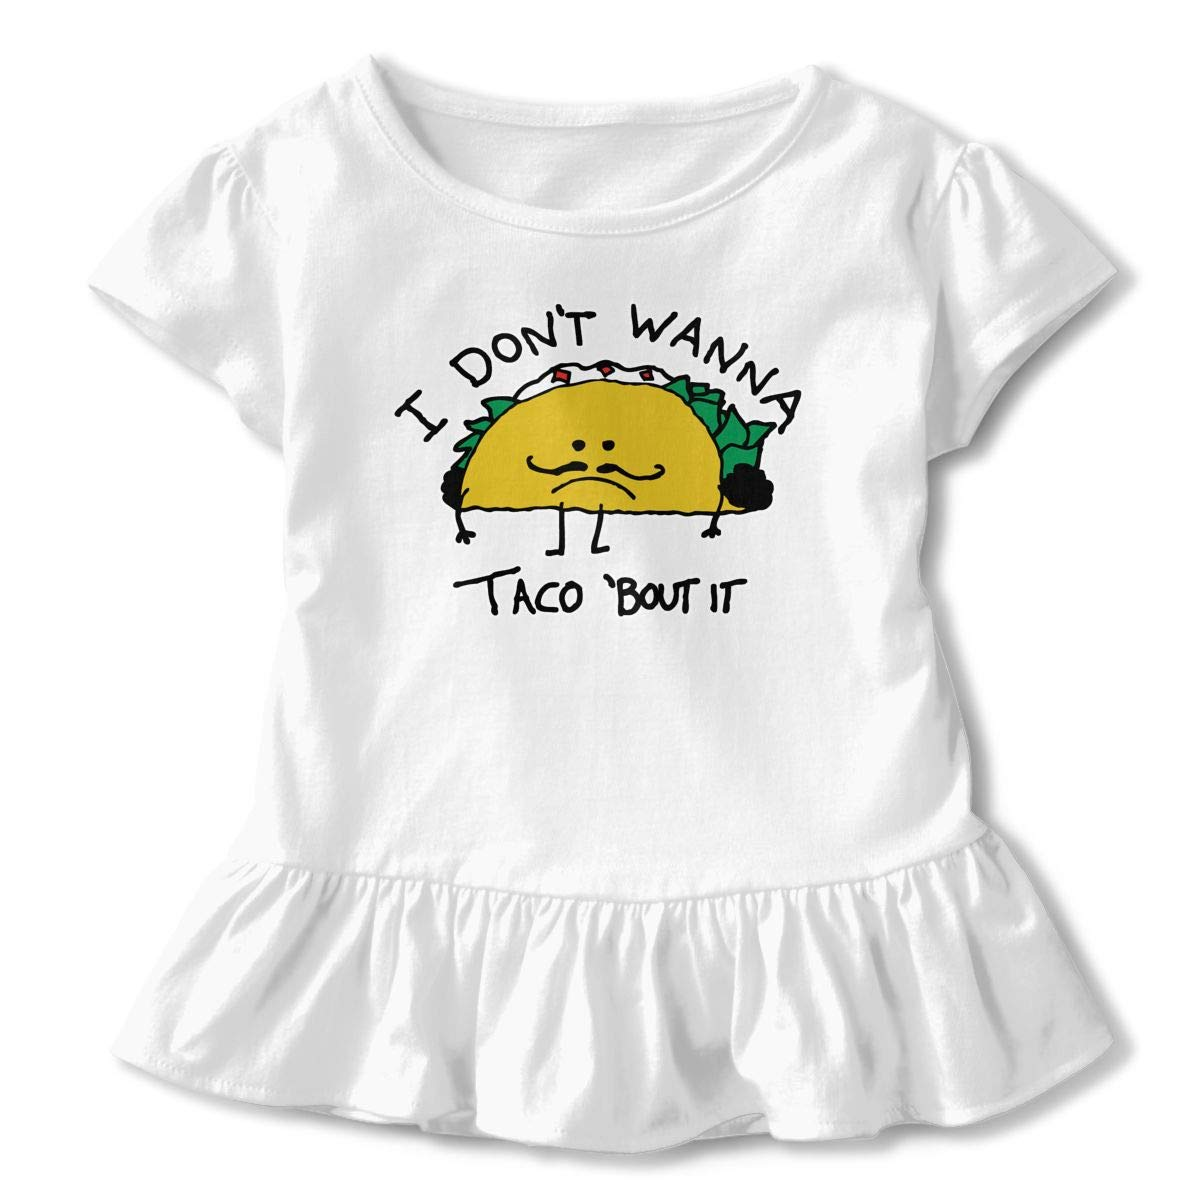 ZP-CCYF I Dont Wanna Taco Bout It Toddler Baby Girl Ruffle Short Sleeve T-Shirt Soft Cotton T Shirts